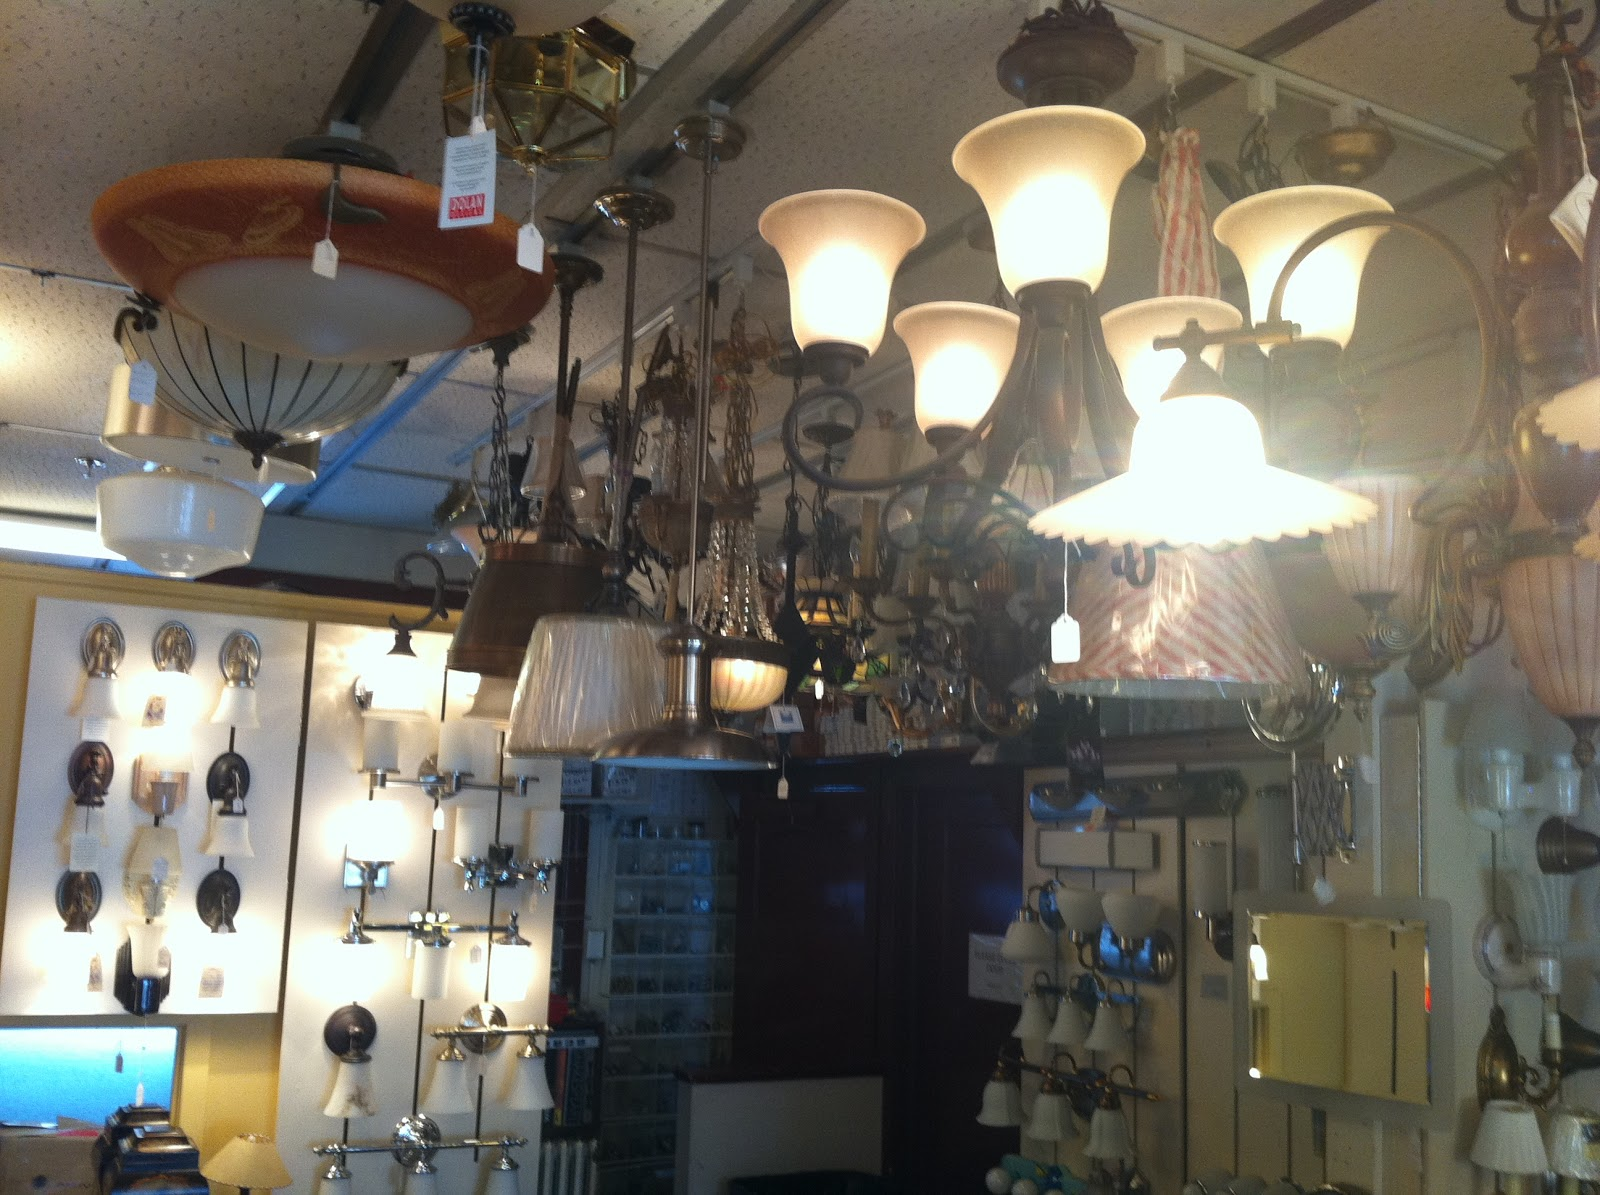 Gen3 electric 215 352 5963 lighting showroom for the main line on every bit of ceiling space hangs different types of chandeliers arubaitofo Images